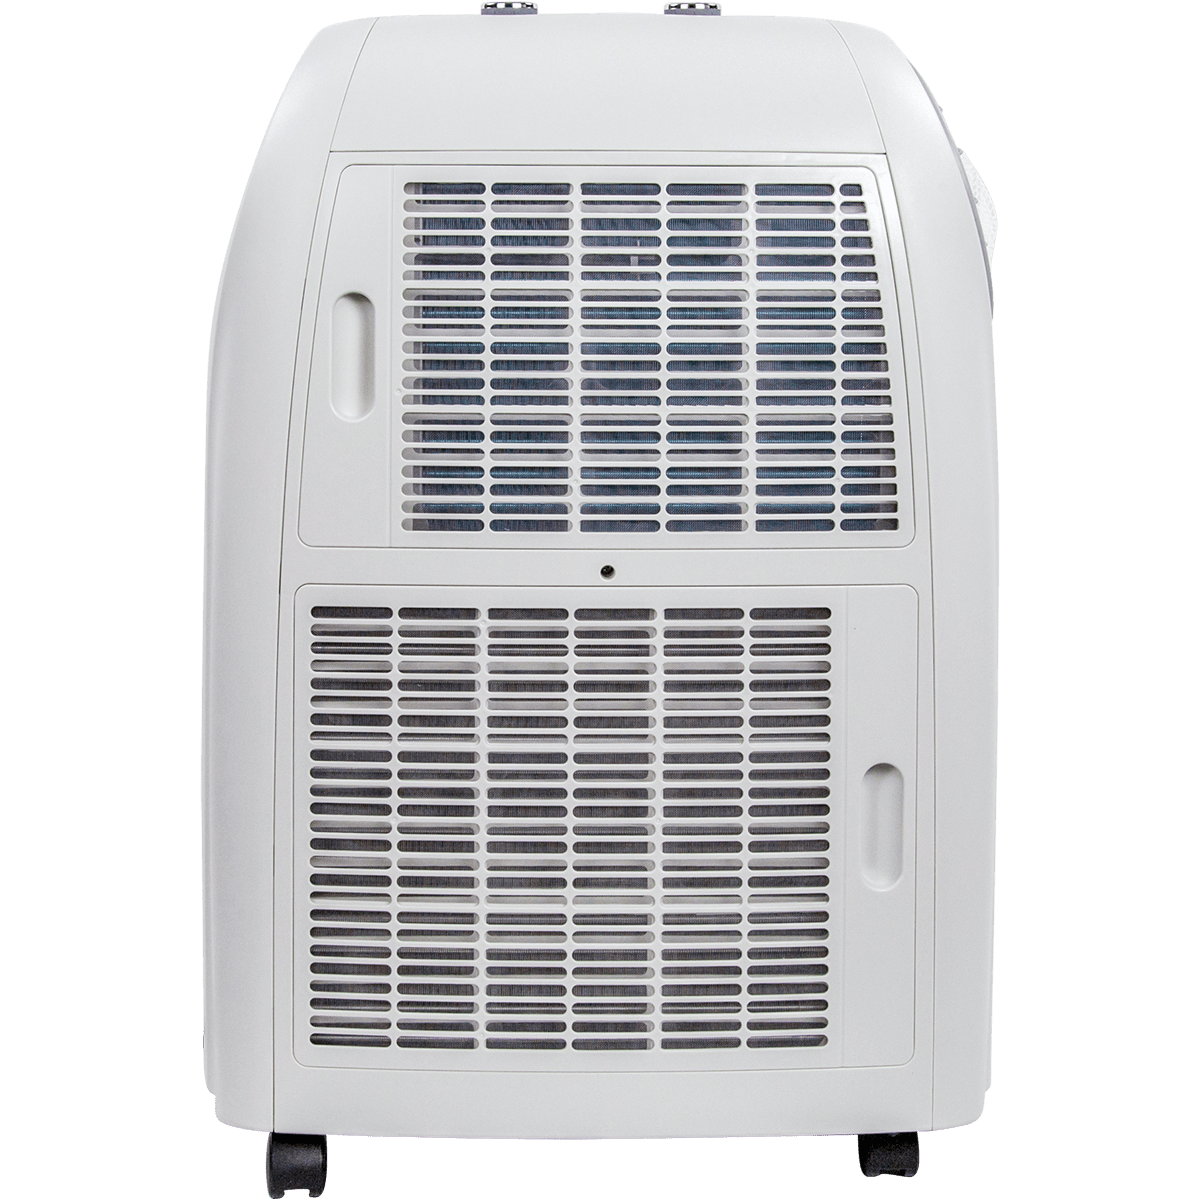 friedrich p10s btu portable air conditioner sylvane - Air Conditioner And Heater